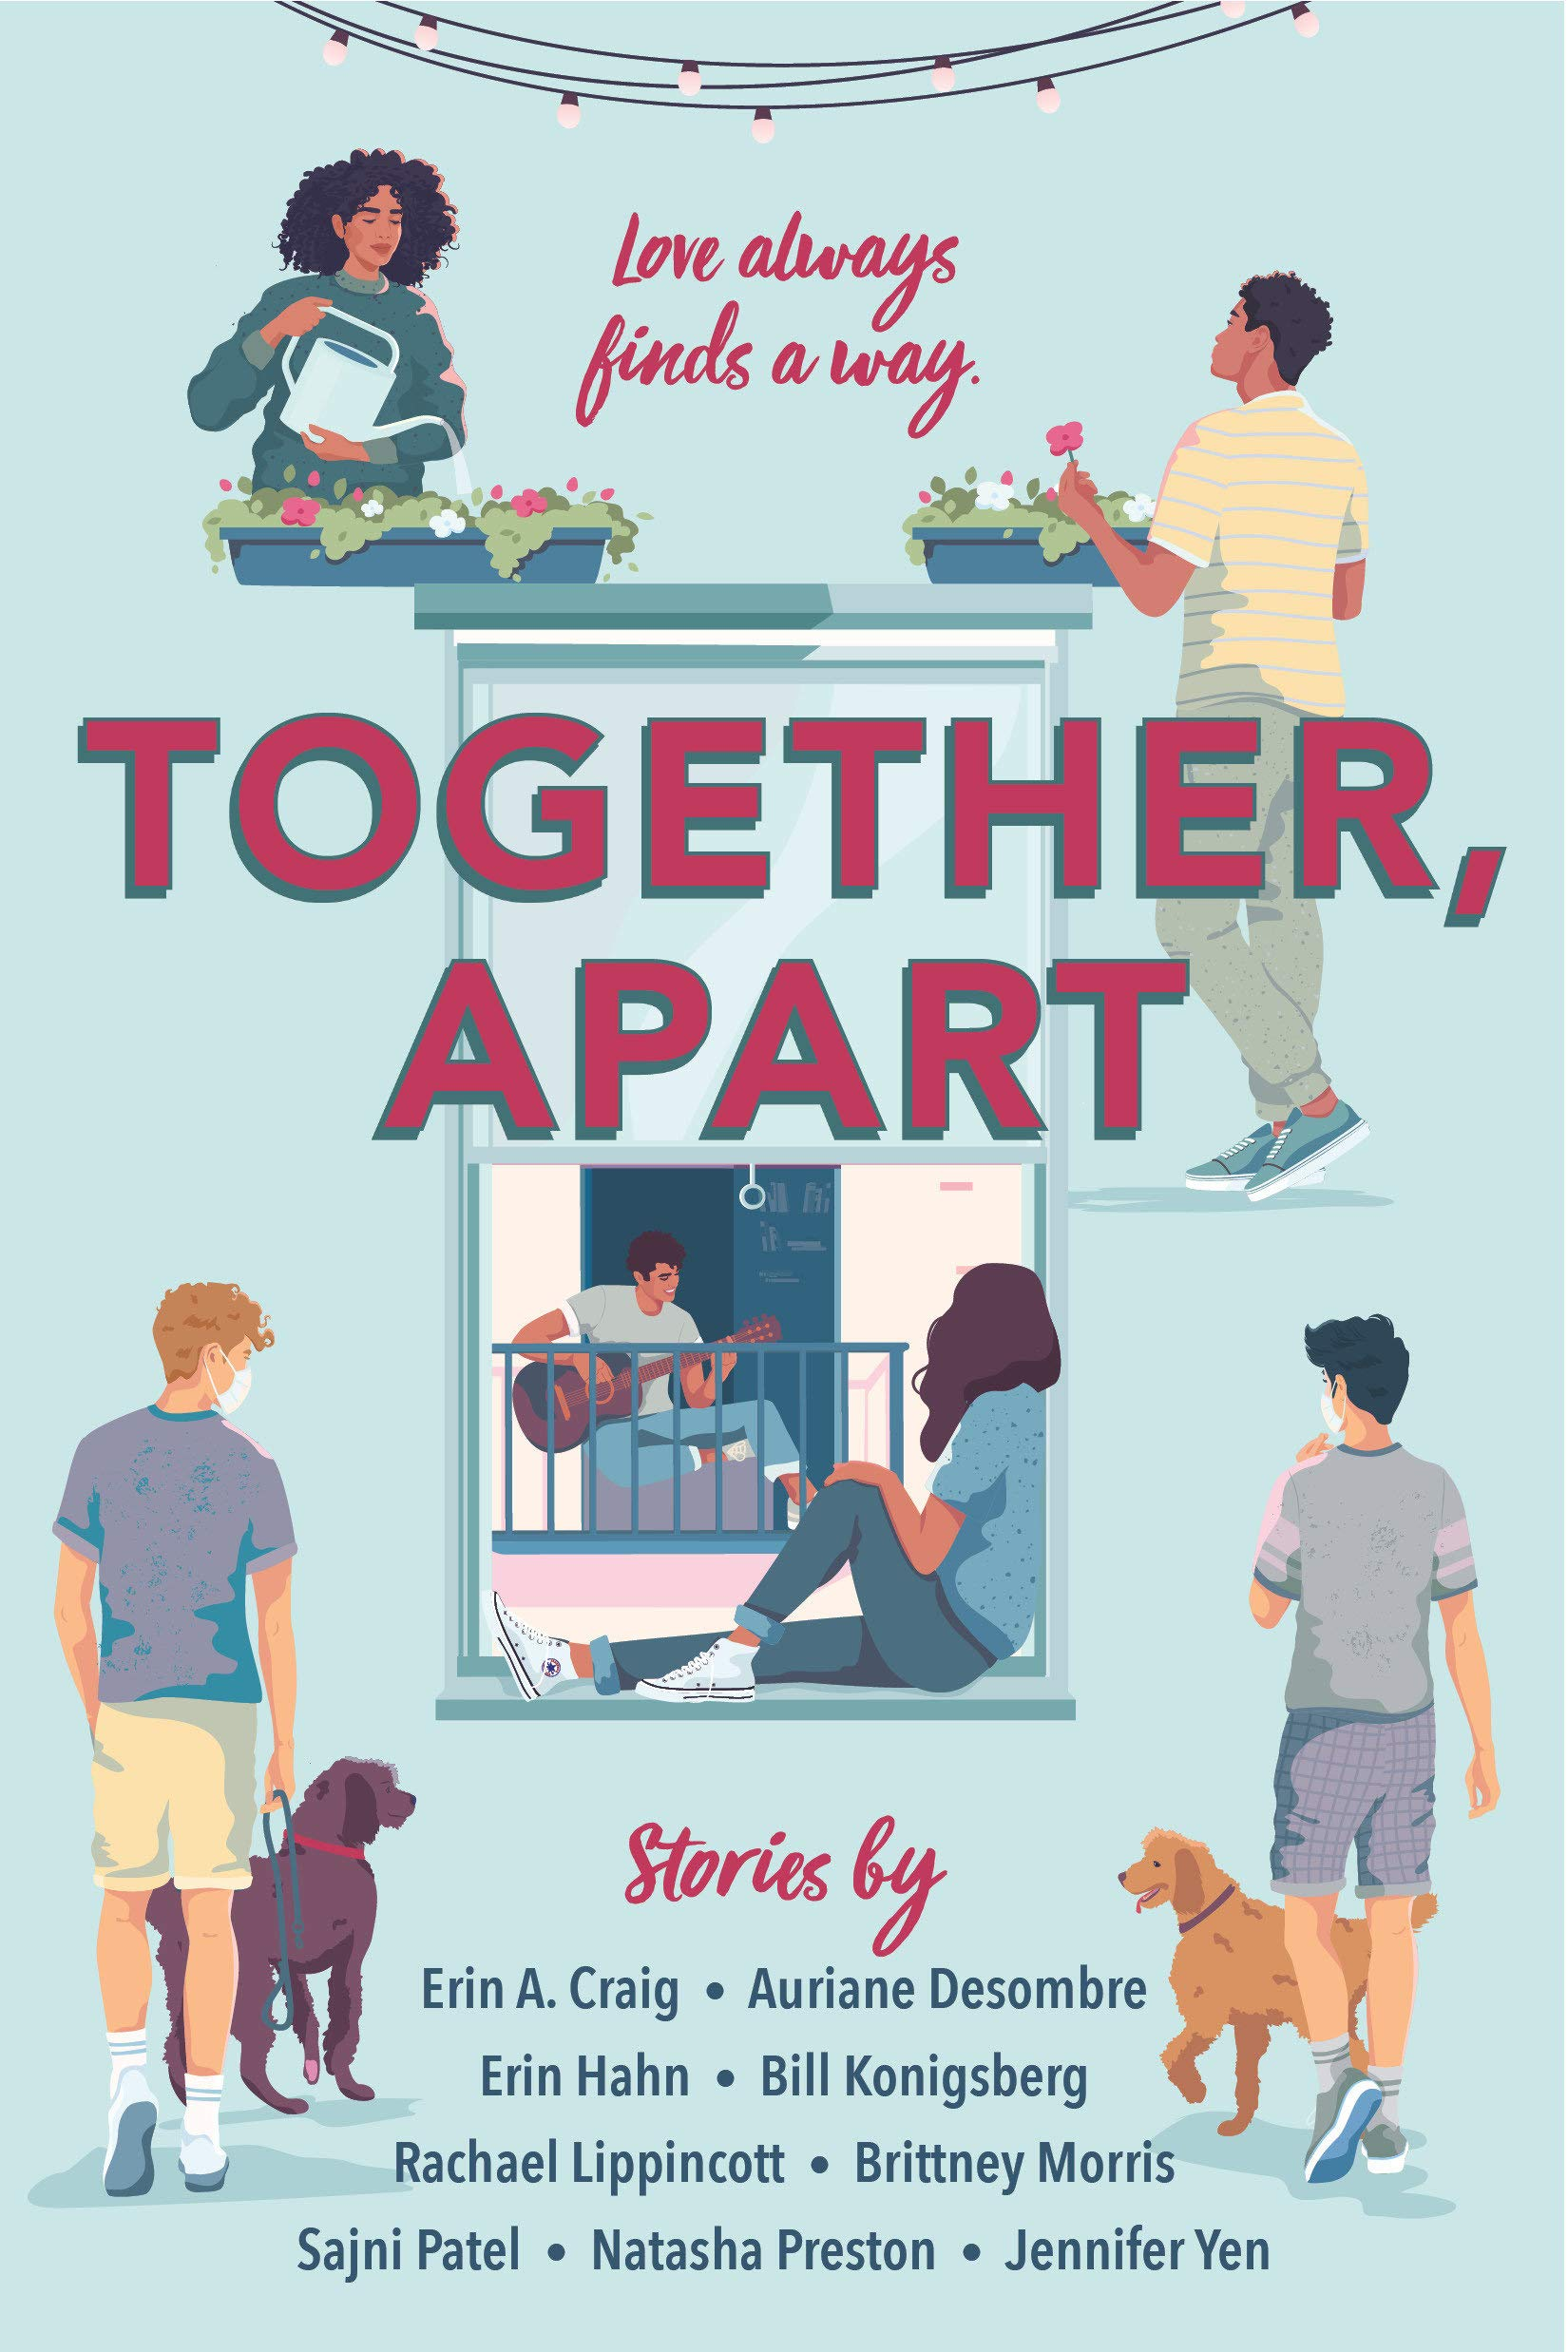 Together, Apart: Craig, Erin A., Desombre, Auriane, Hahn, Erin, Konigsberg,  Bill, Lippincott, Rachael, Morris, Brittney, Patel, Sajni, Preston,  Natasha, Yen, Jennifer: 9780593375297: Books - Amazon.ca